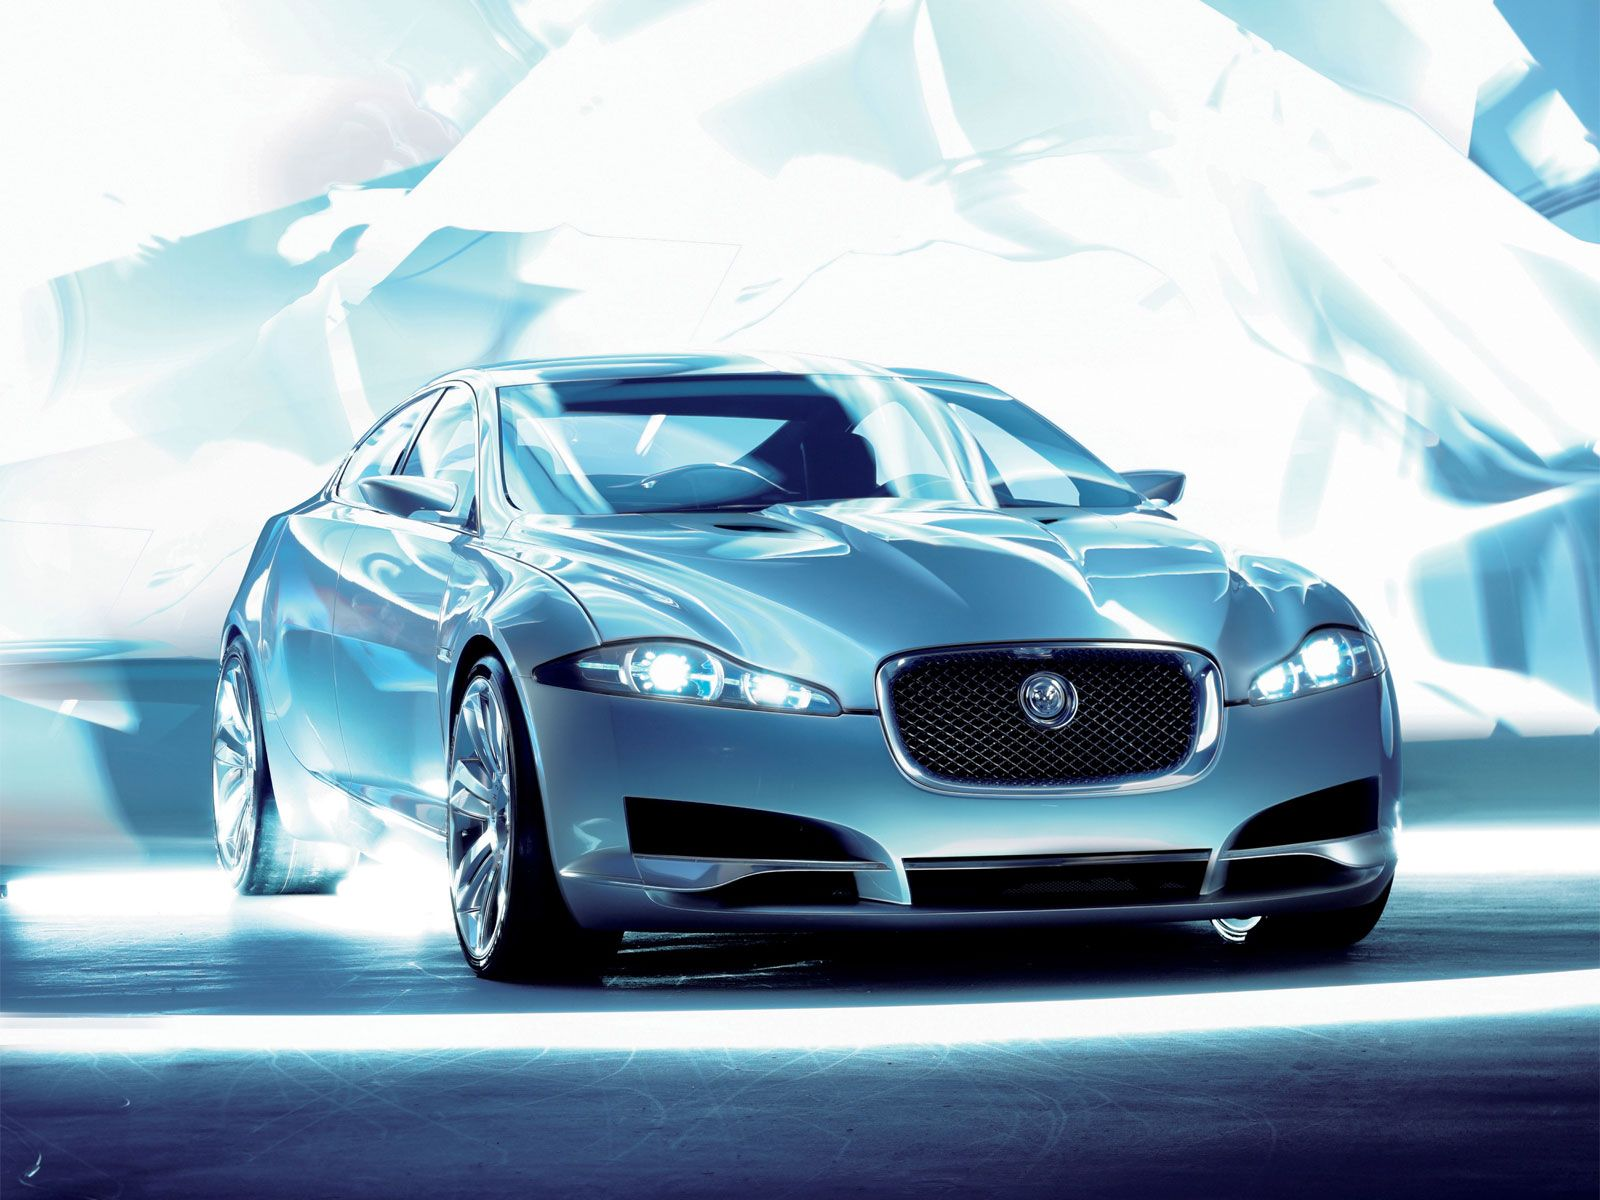 Jaguar Xf Coupé I M Not Picky Silver Works Too Jaguar Xf Coupe My Wishboard